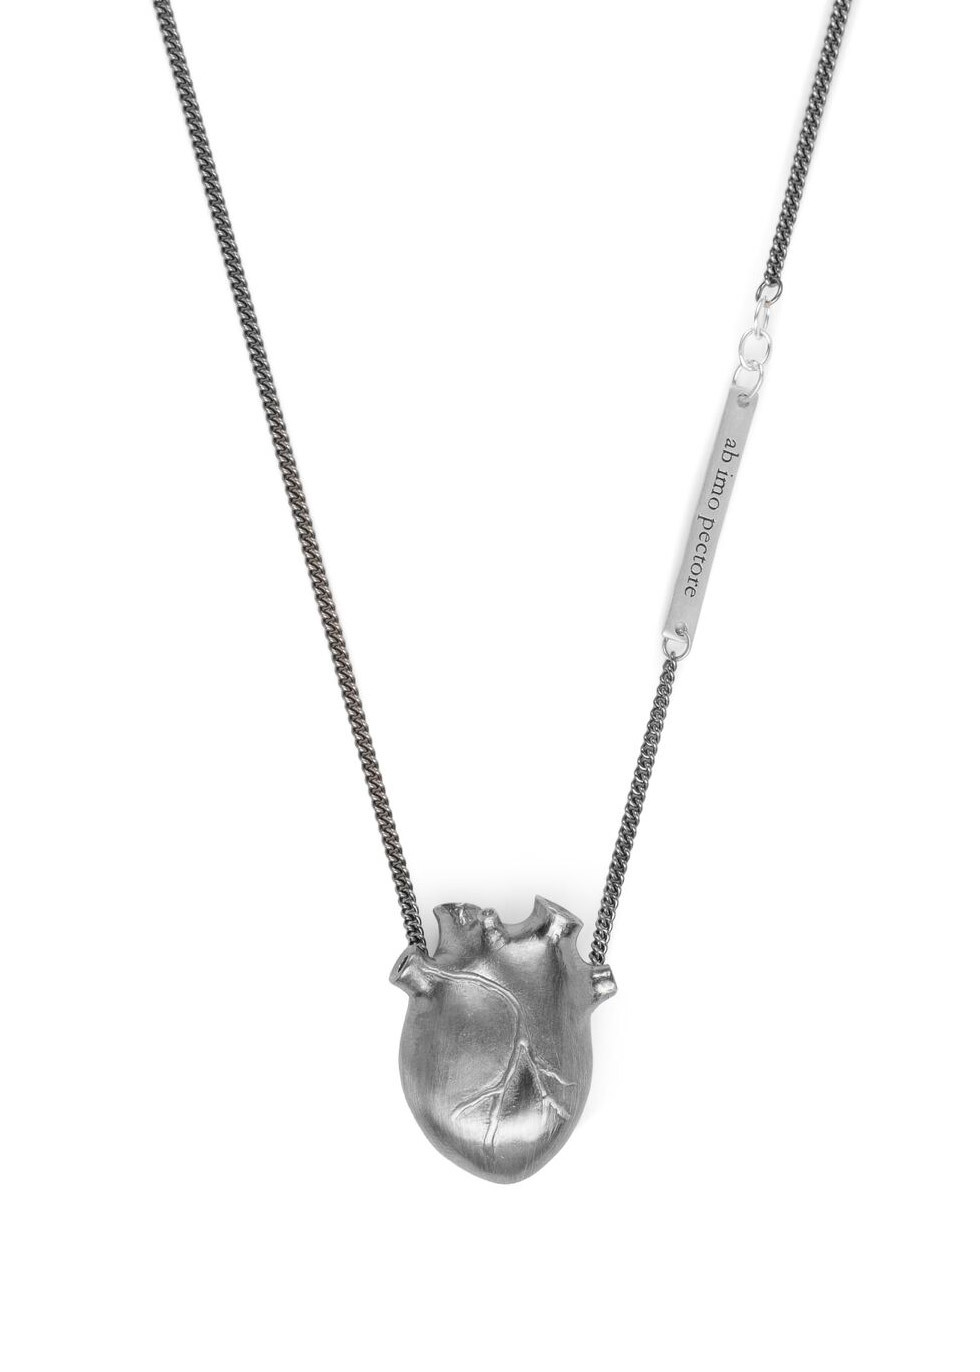 BJ0RG JEWELLERY Large Anatomic Heart Necklace